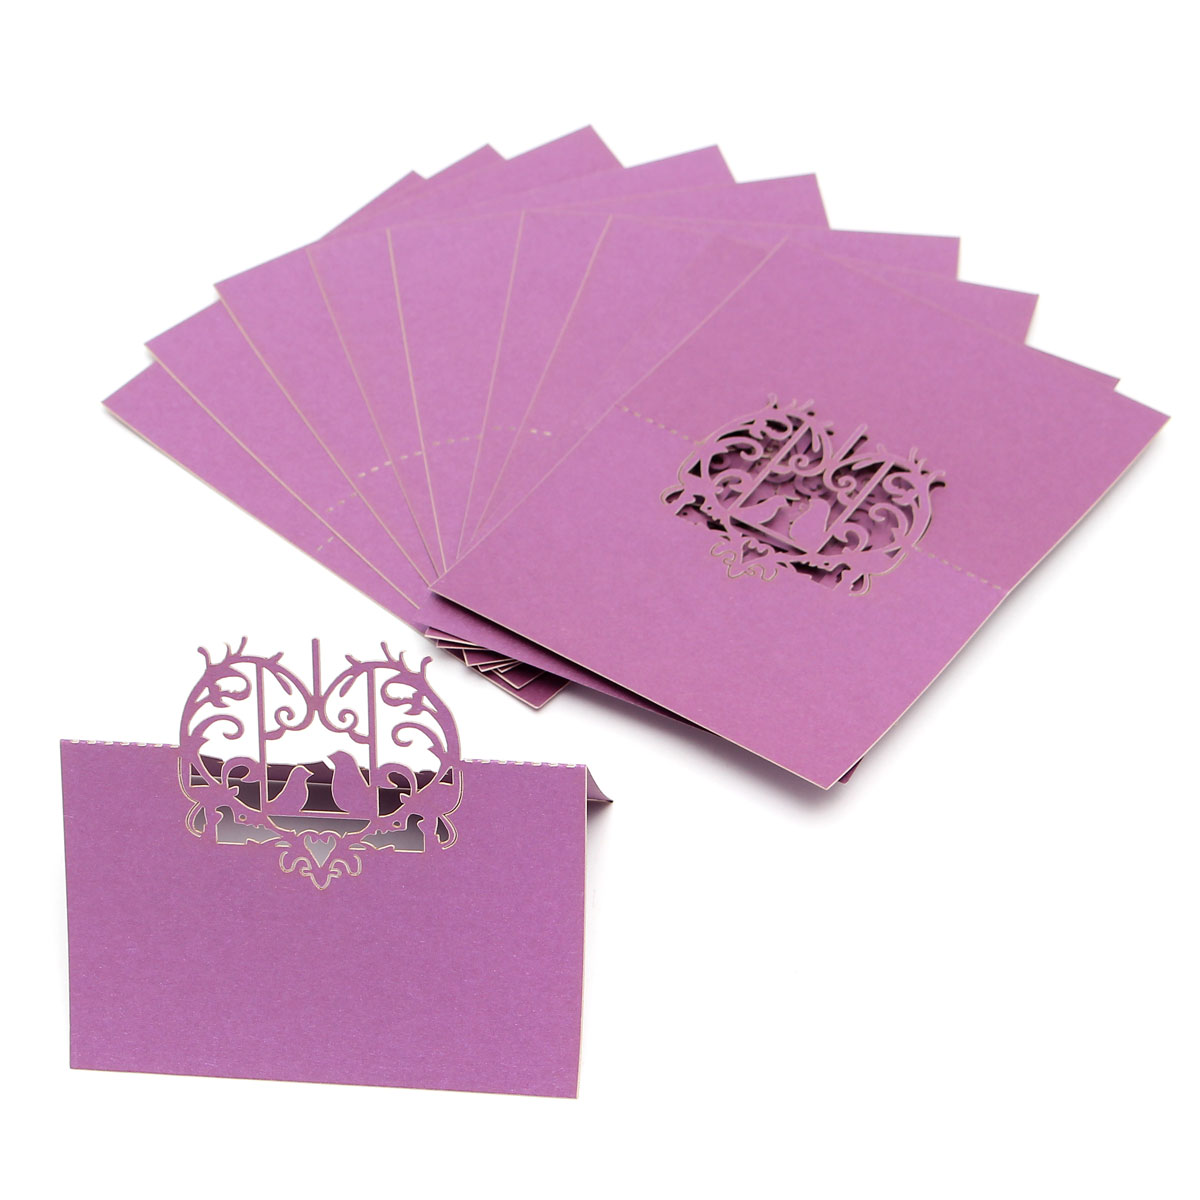 10Pcs Laser Cut Love Birds Table Name Place Cards Wedding Party Favor Gift Accessories